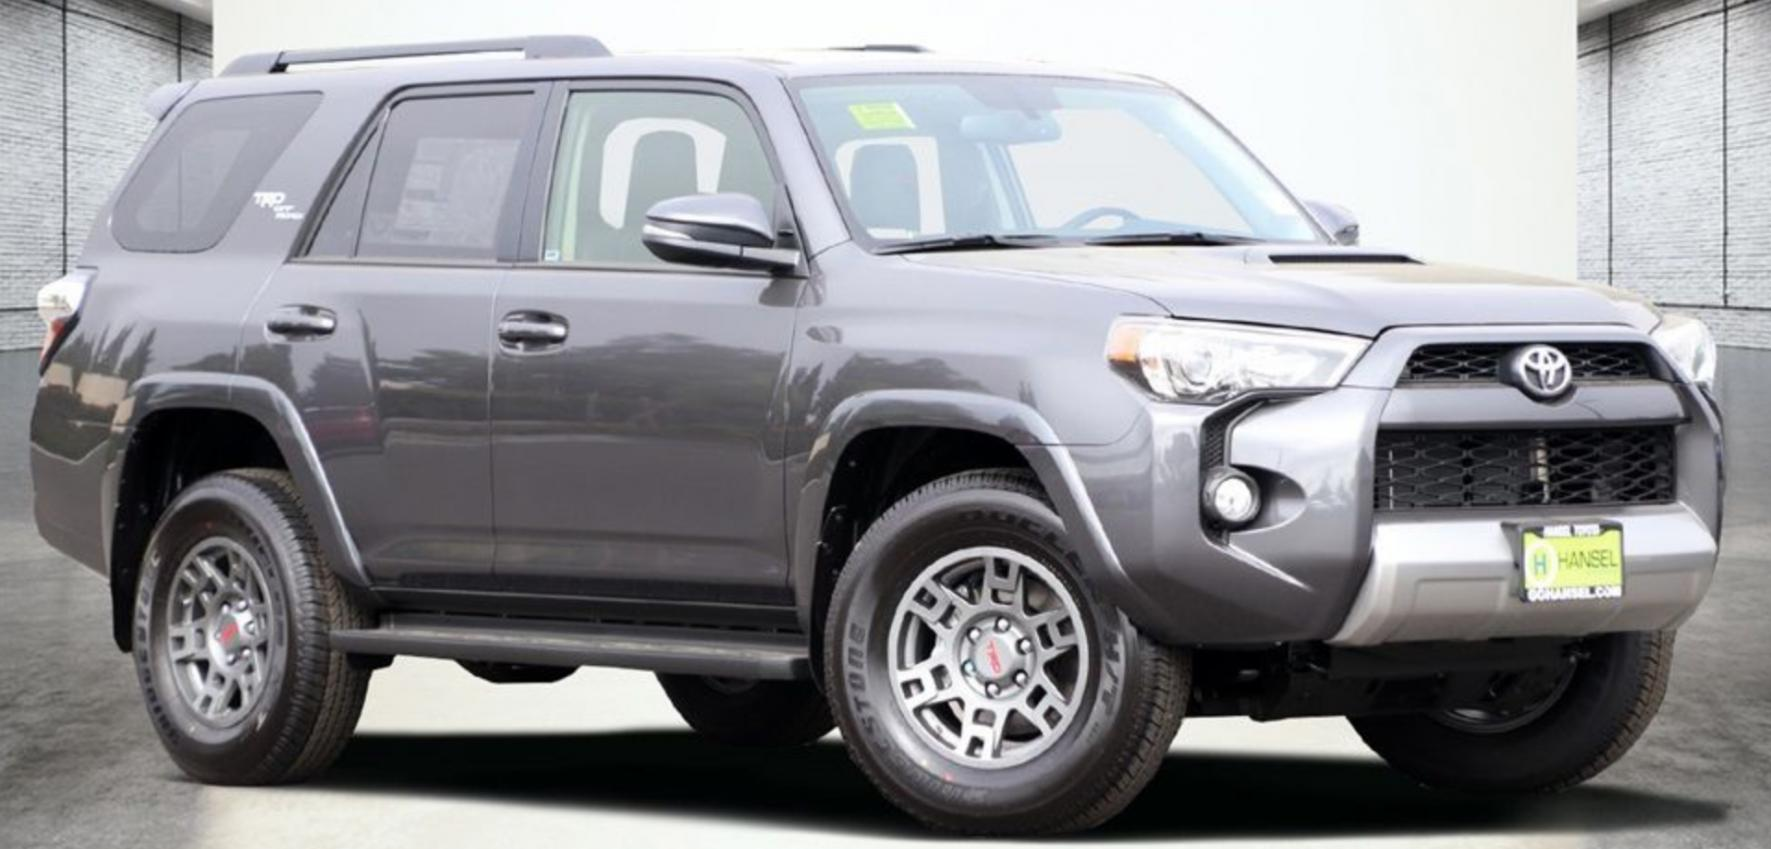 2020 4runner Trd Off Road Premium Page 9 Toyota 4runner Forum Largest 4runner Forum